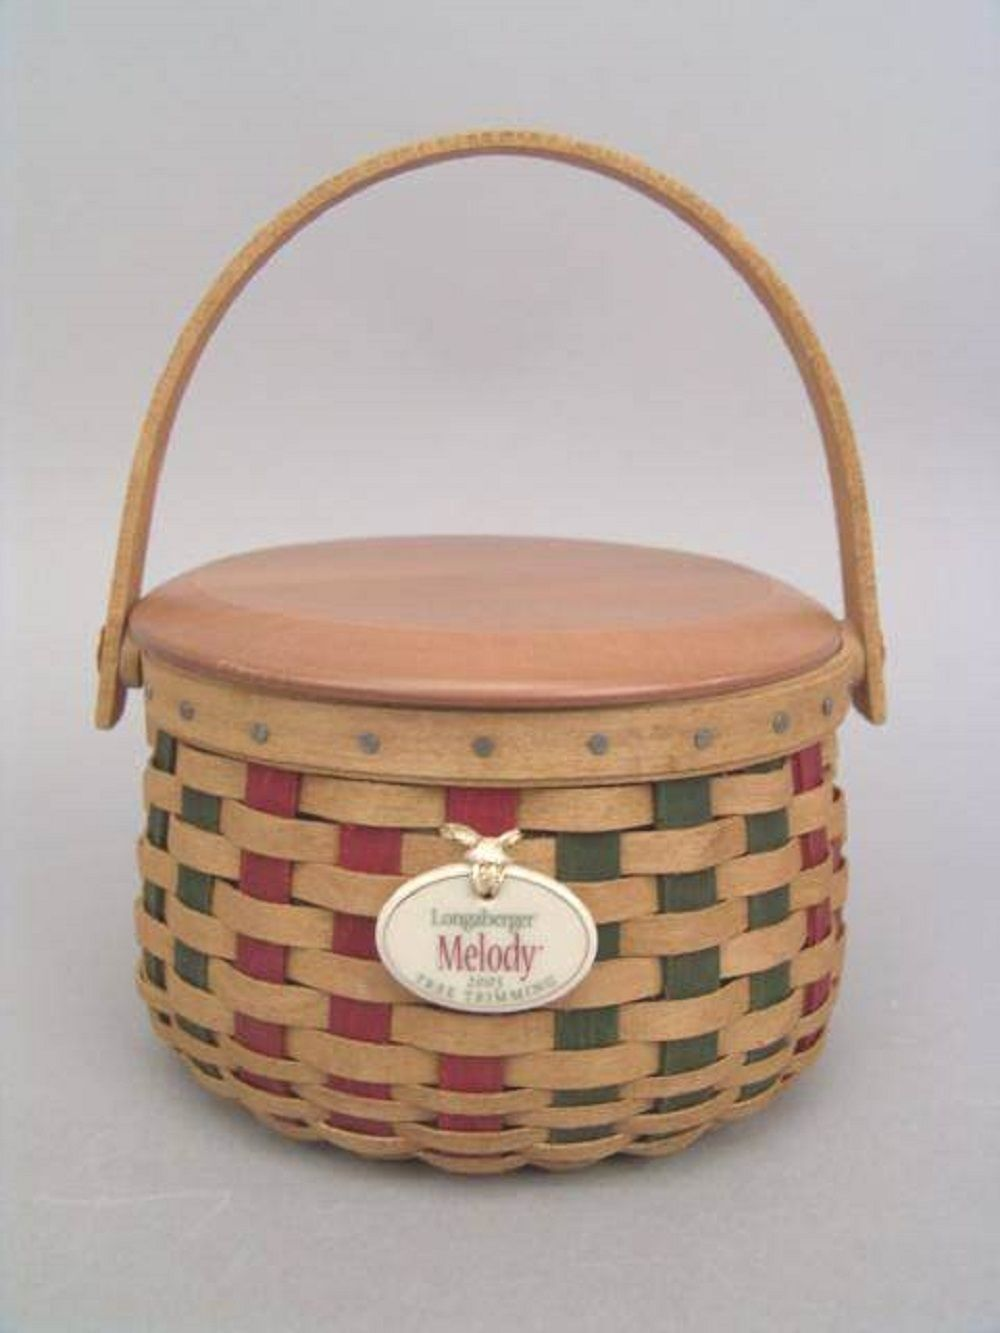 Longaberger Basket Tie On Only Melody Tree Trimming Pottery New In Box Authentic